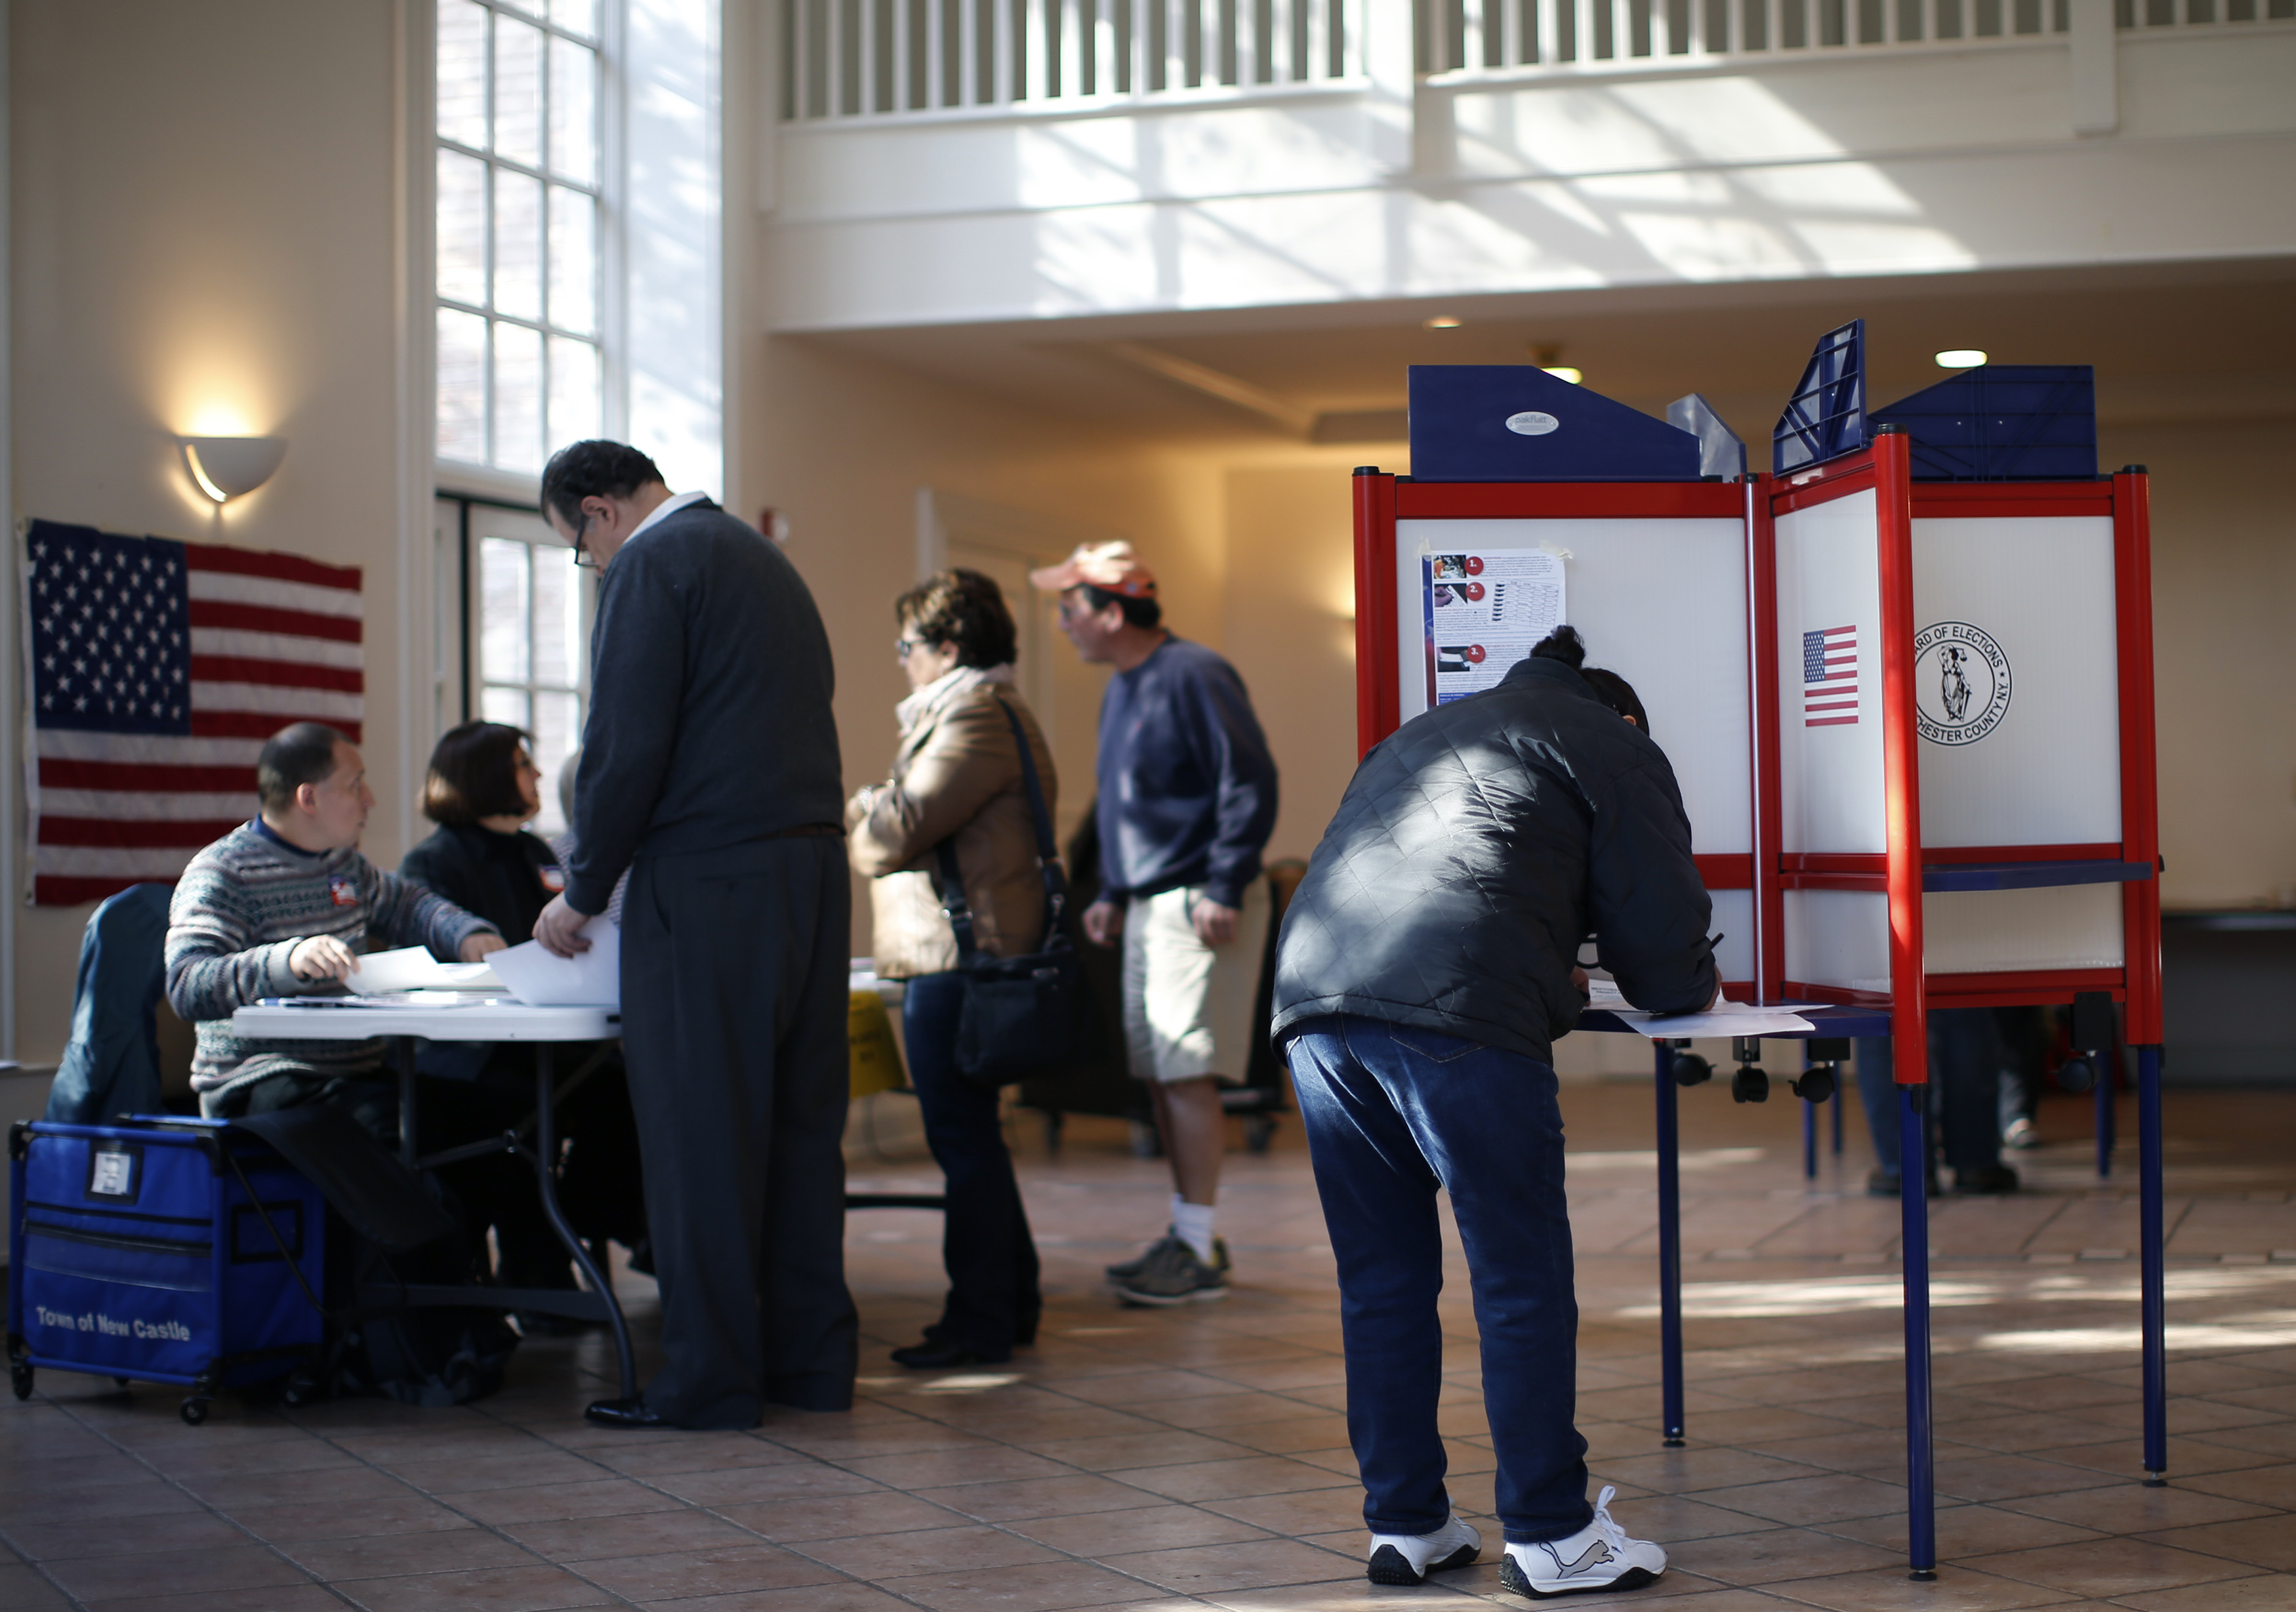 Voters sign in and fill out ballots and at a polling station at the Presbyterian Church in the town of Mount Kisco, New York, on November 4, 2014. Americans were heading to the polls Tuesday in the midterm elections.